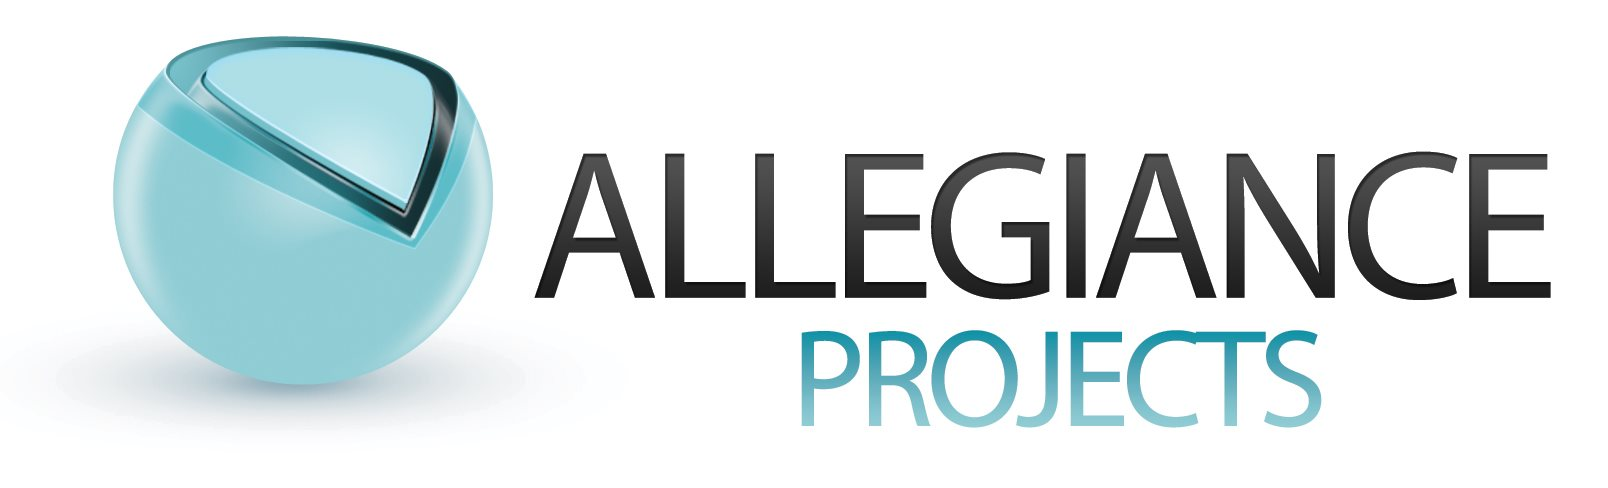 Allegiance Projects